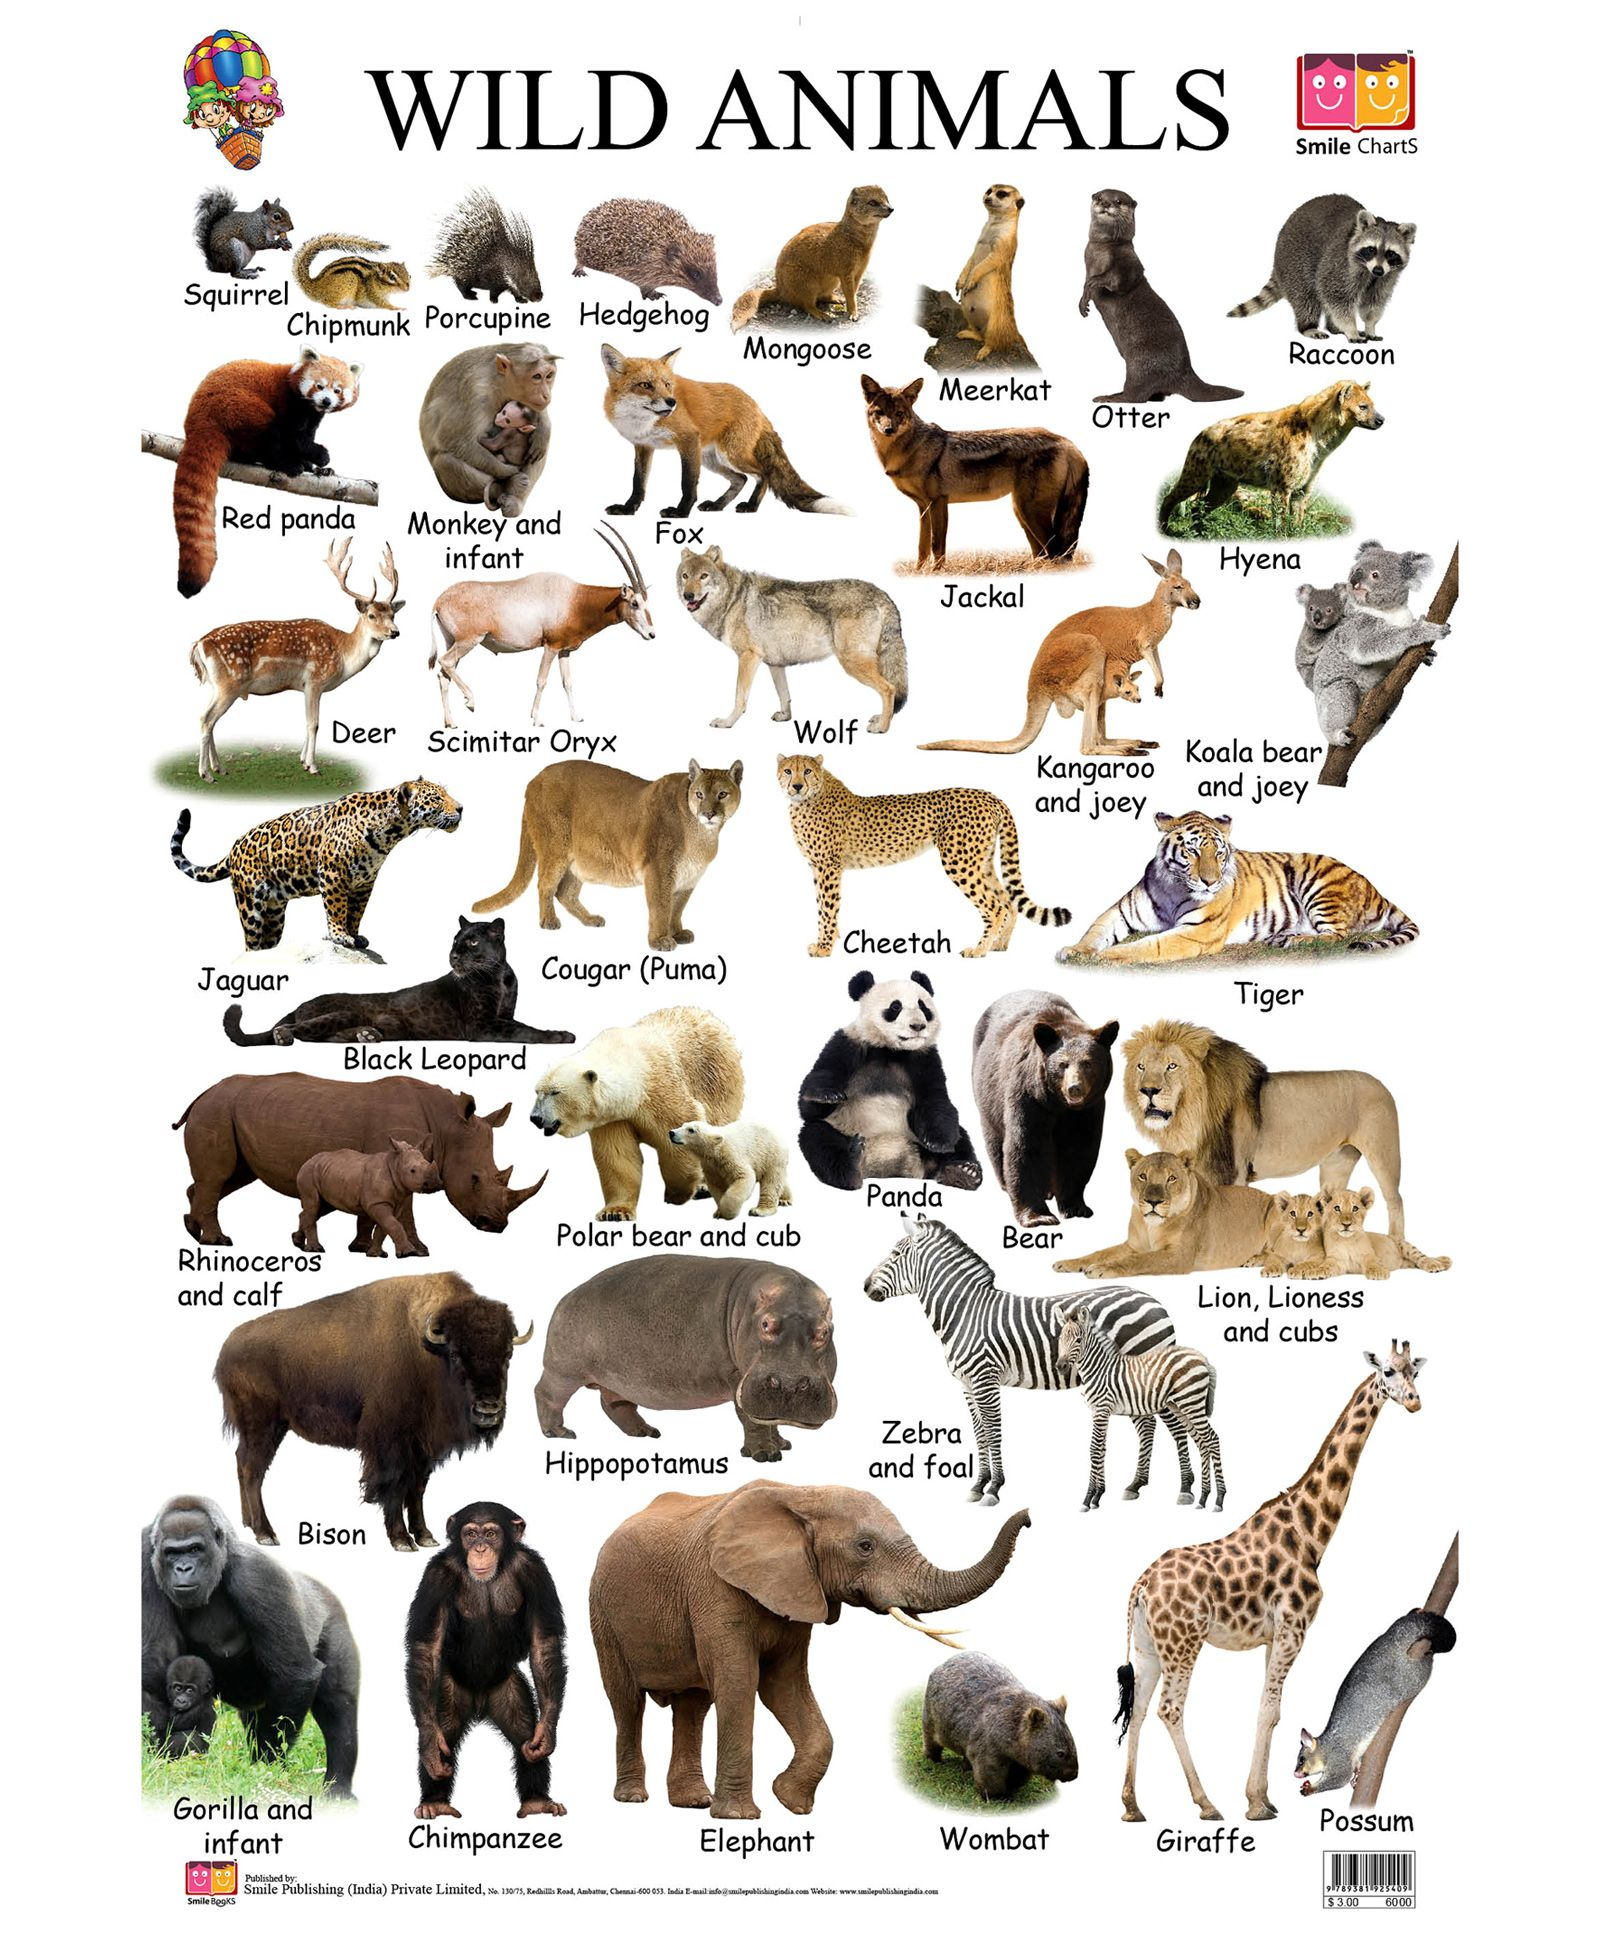 Hq Wallpapers Plus Provides Different Size Of Wild Animals